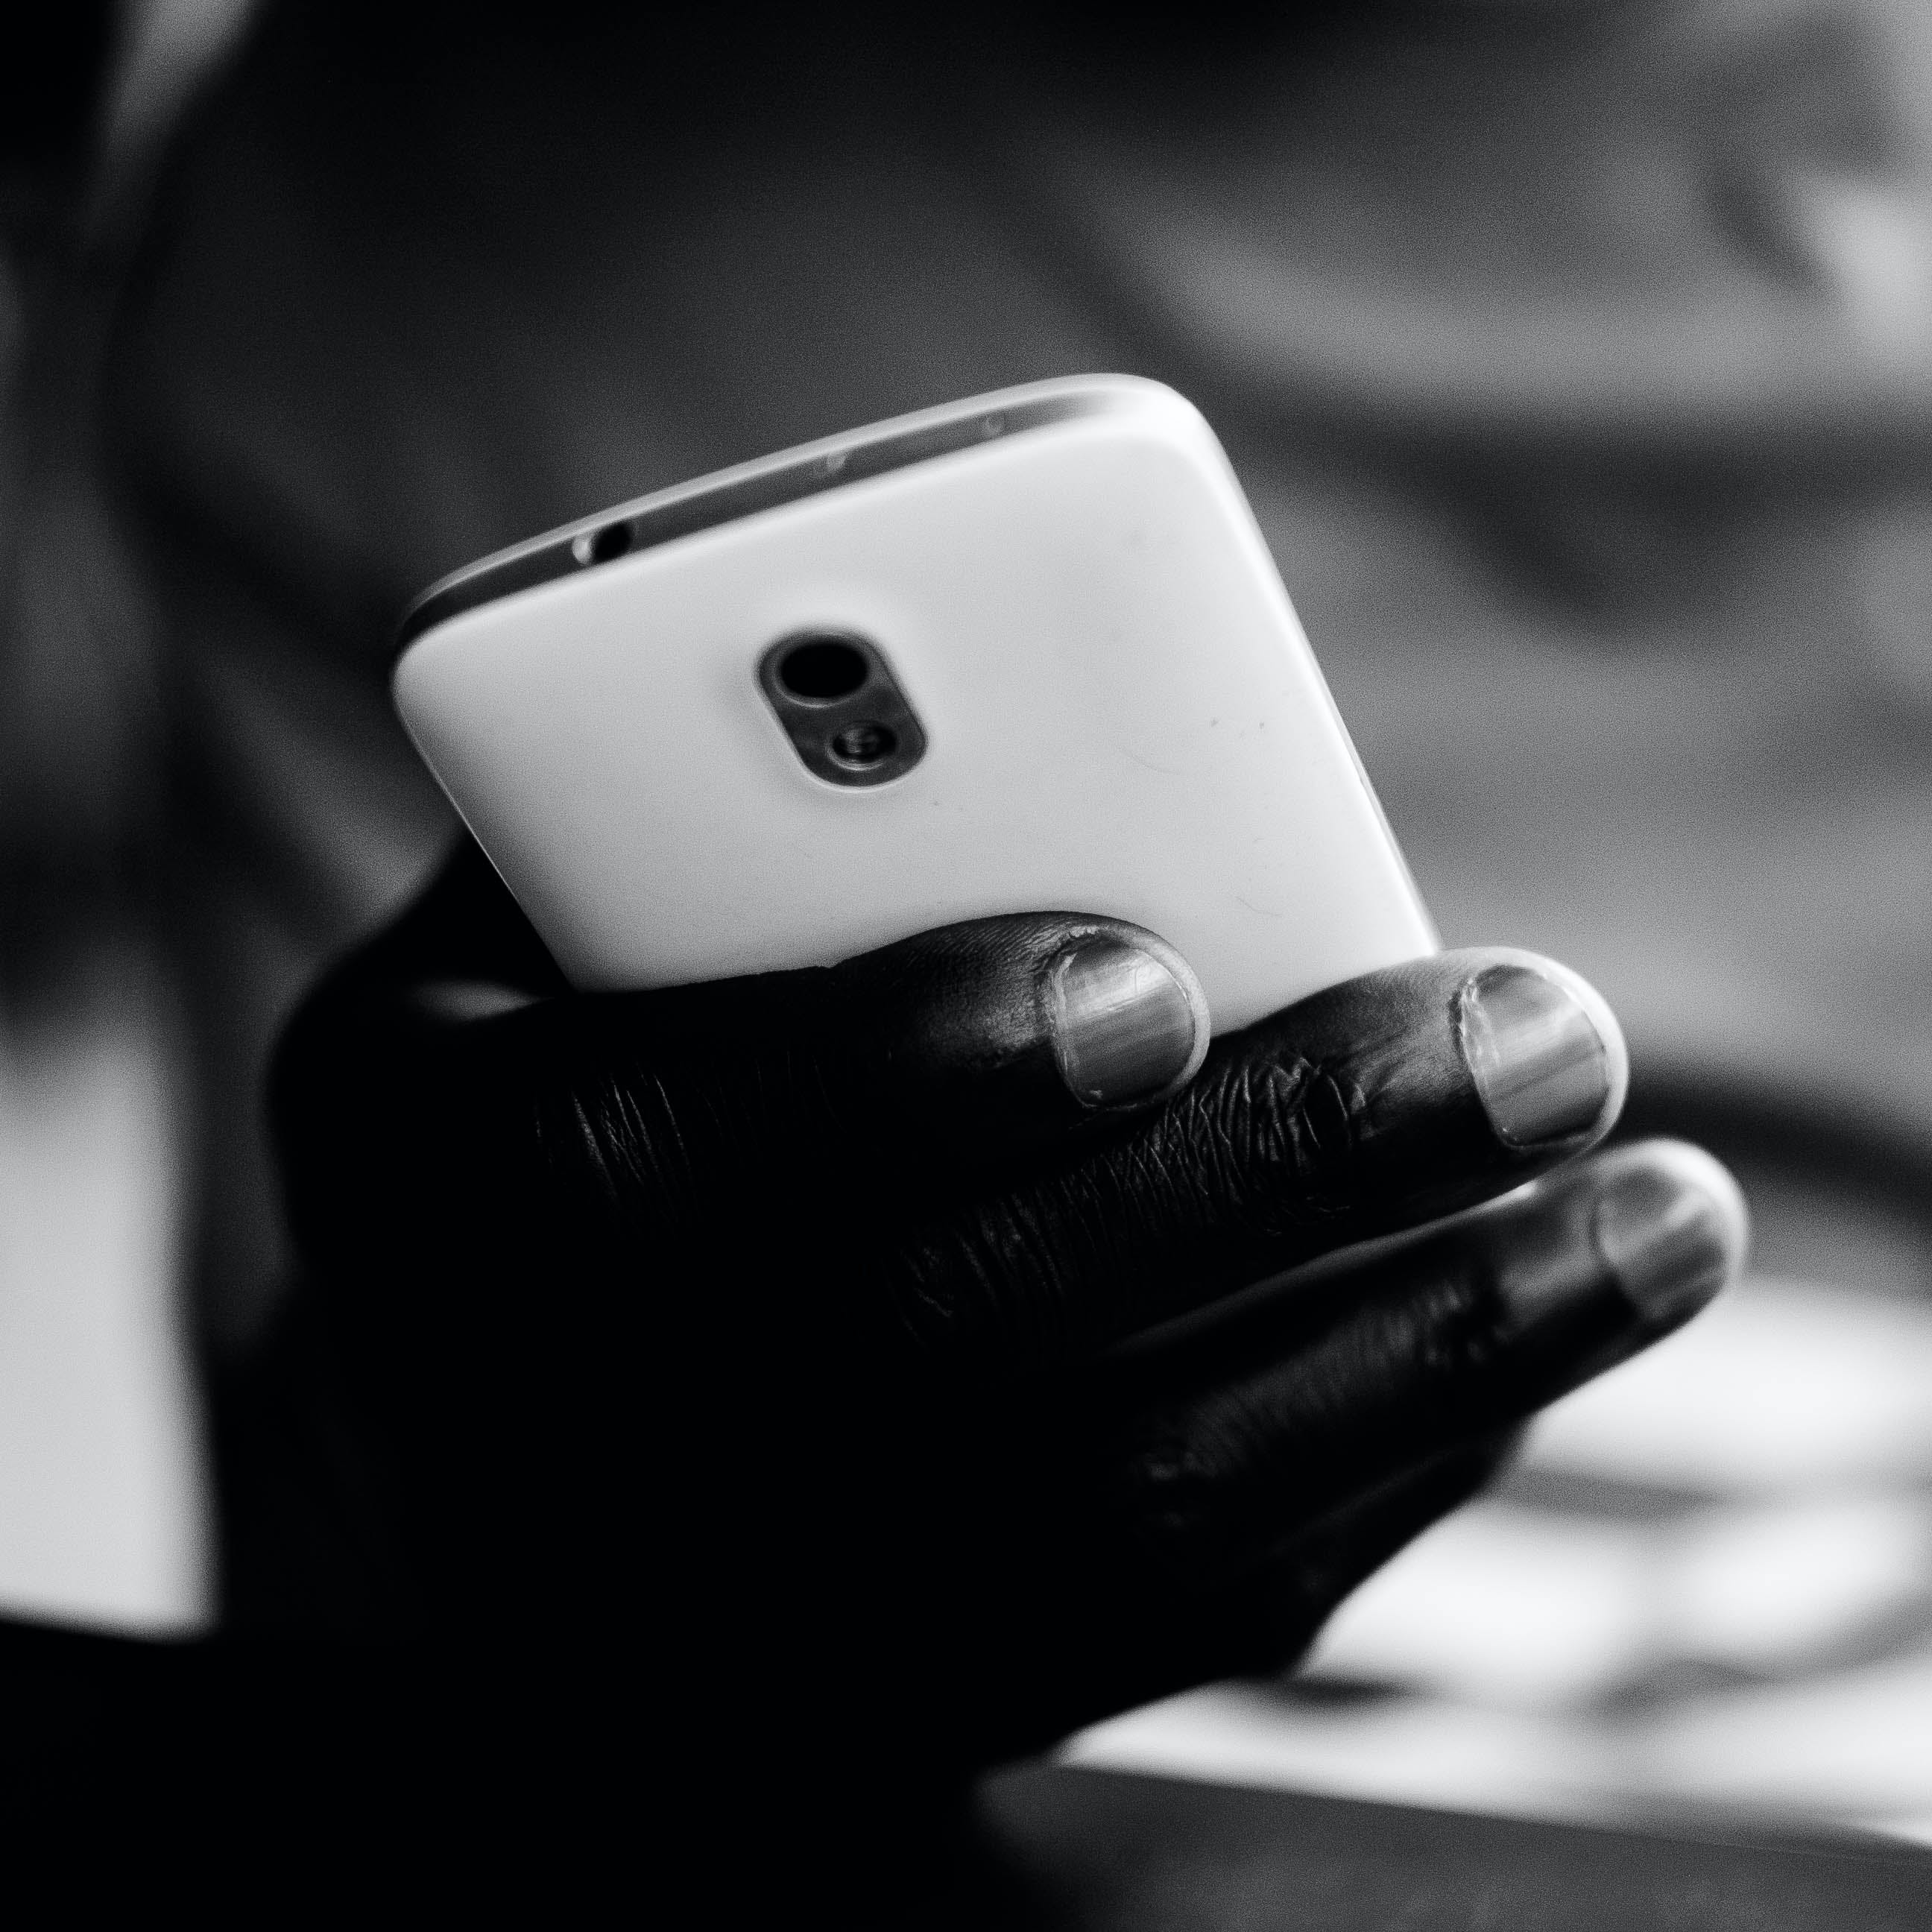 Black and White Photo of Person Holding a Mobile Phone